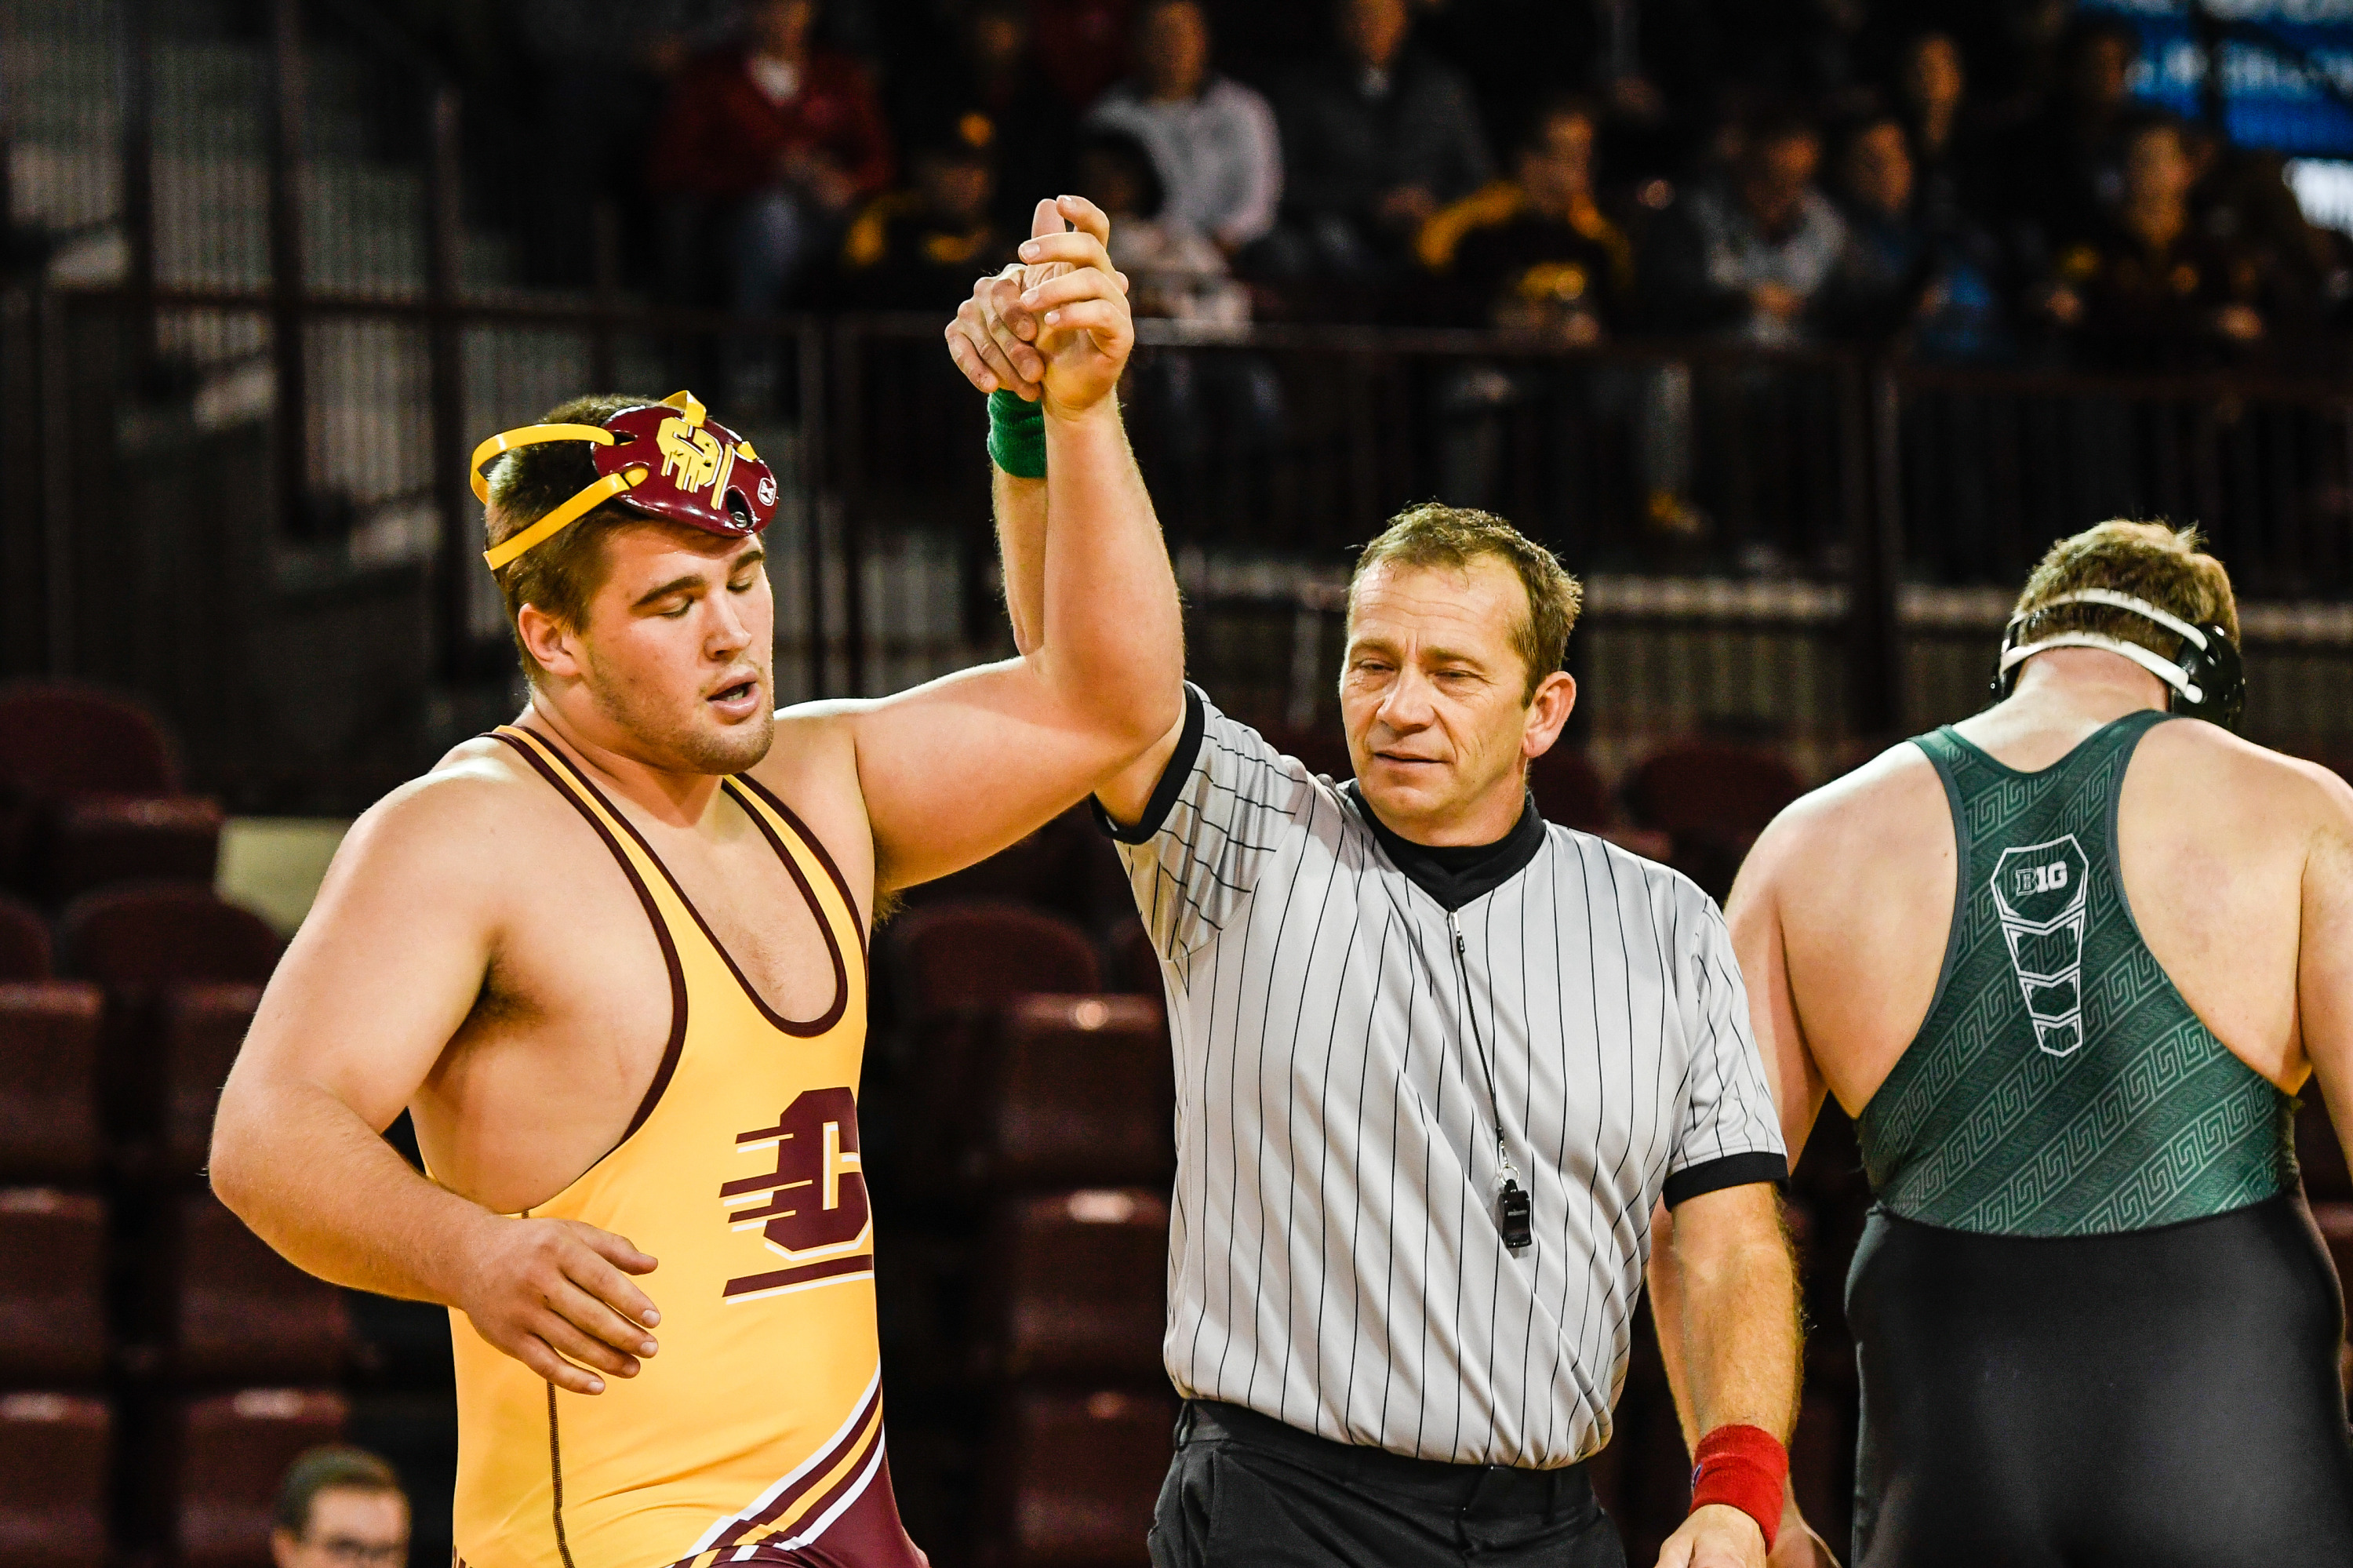 ad7f5df26fe7 Chippewas Wrestlers Complete Unbeaten Weekend - Central Michigan ...